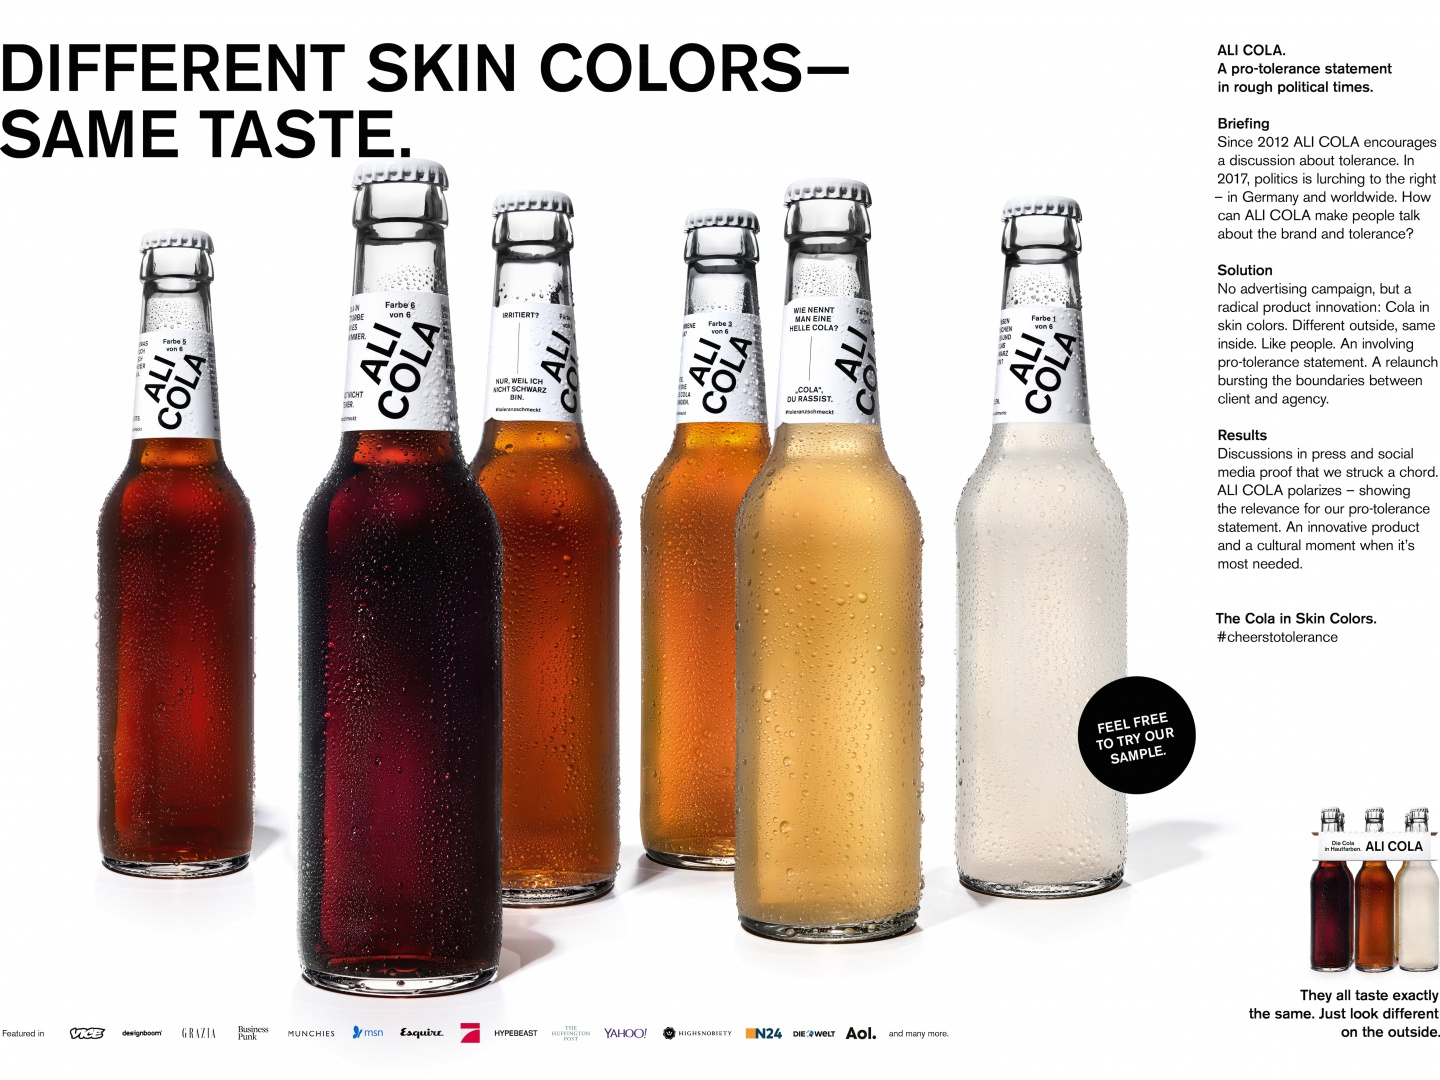 ALI COLA. The Cola In Skin Colors. Thumbnail